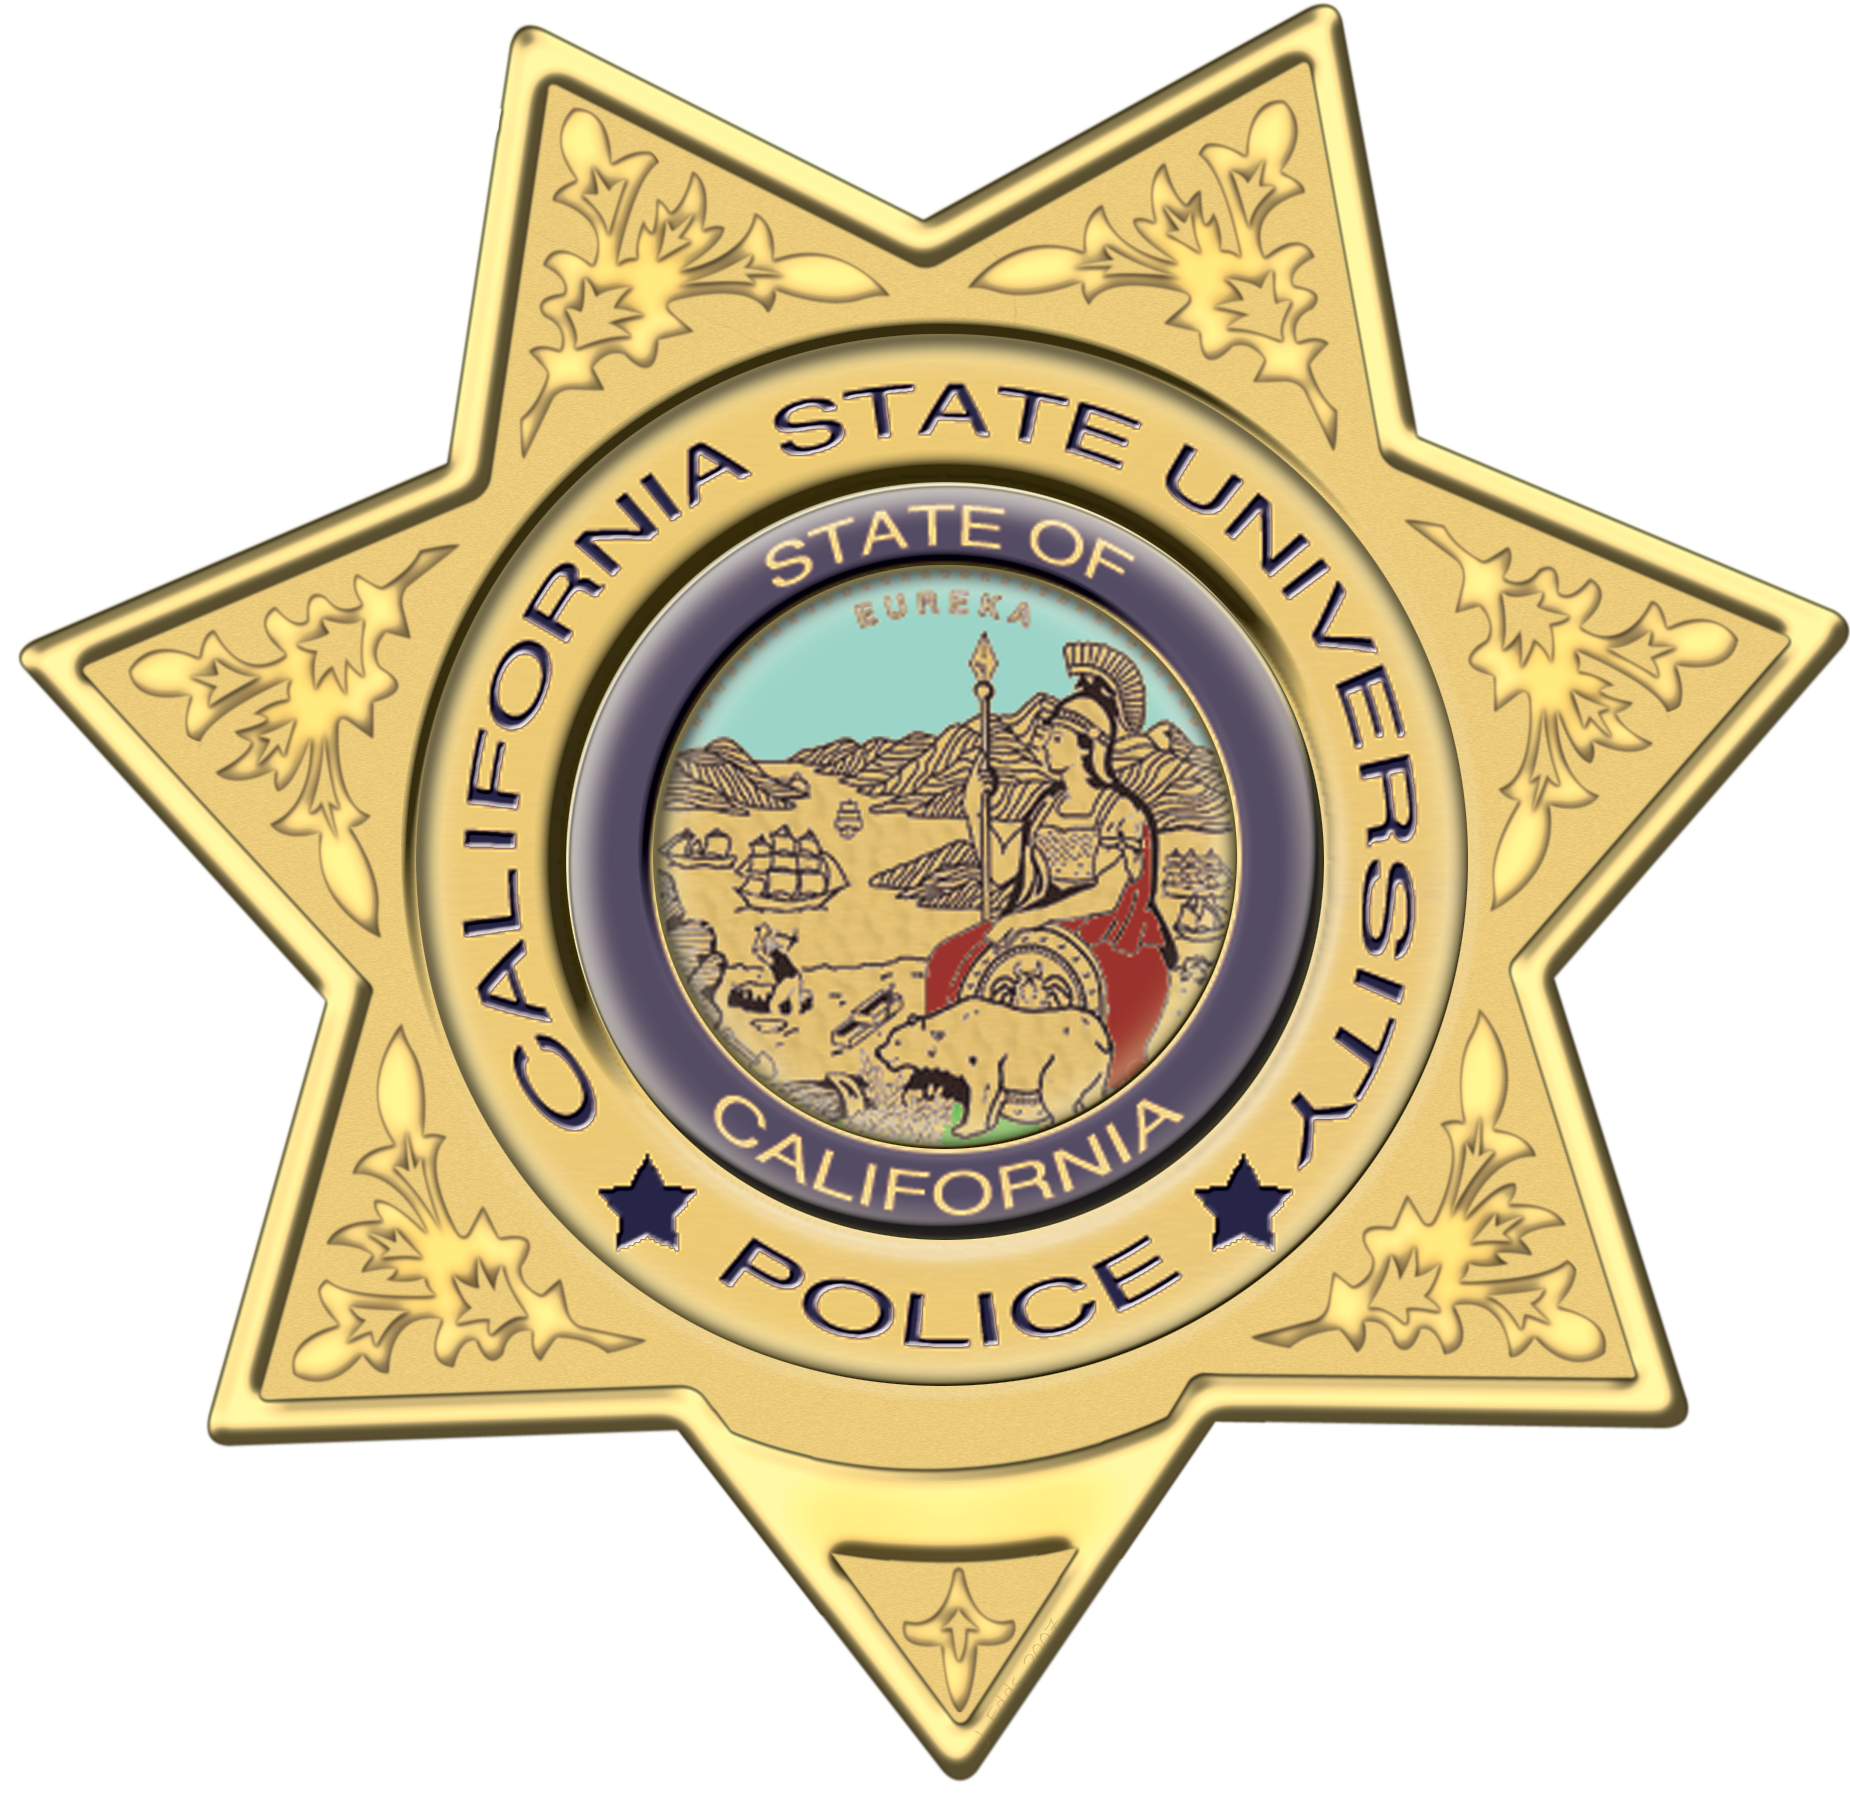 California State University police departments - Wikiwand